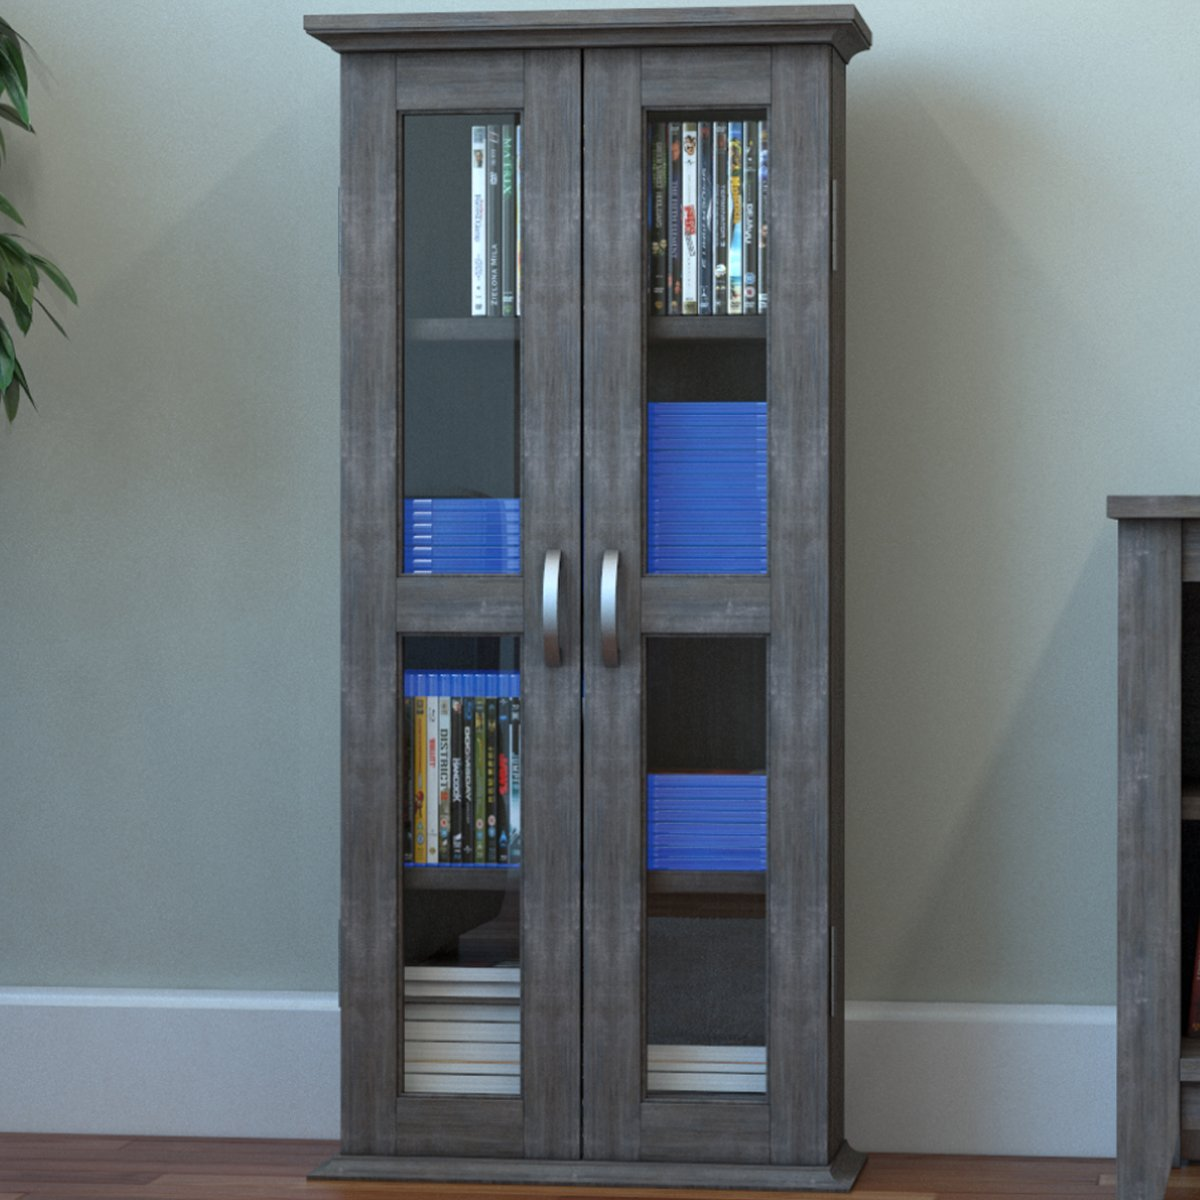 Ryan Rove Kirkwell Wood DVD Storage Shelves Tower - Media Cabinet Organizer, Home Decor, Bedroom and Living Room Furniture - Woo